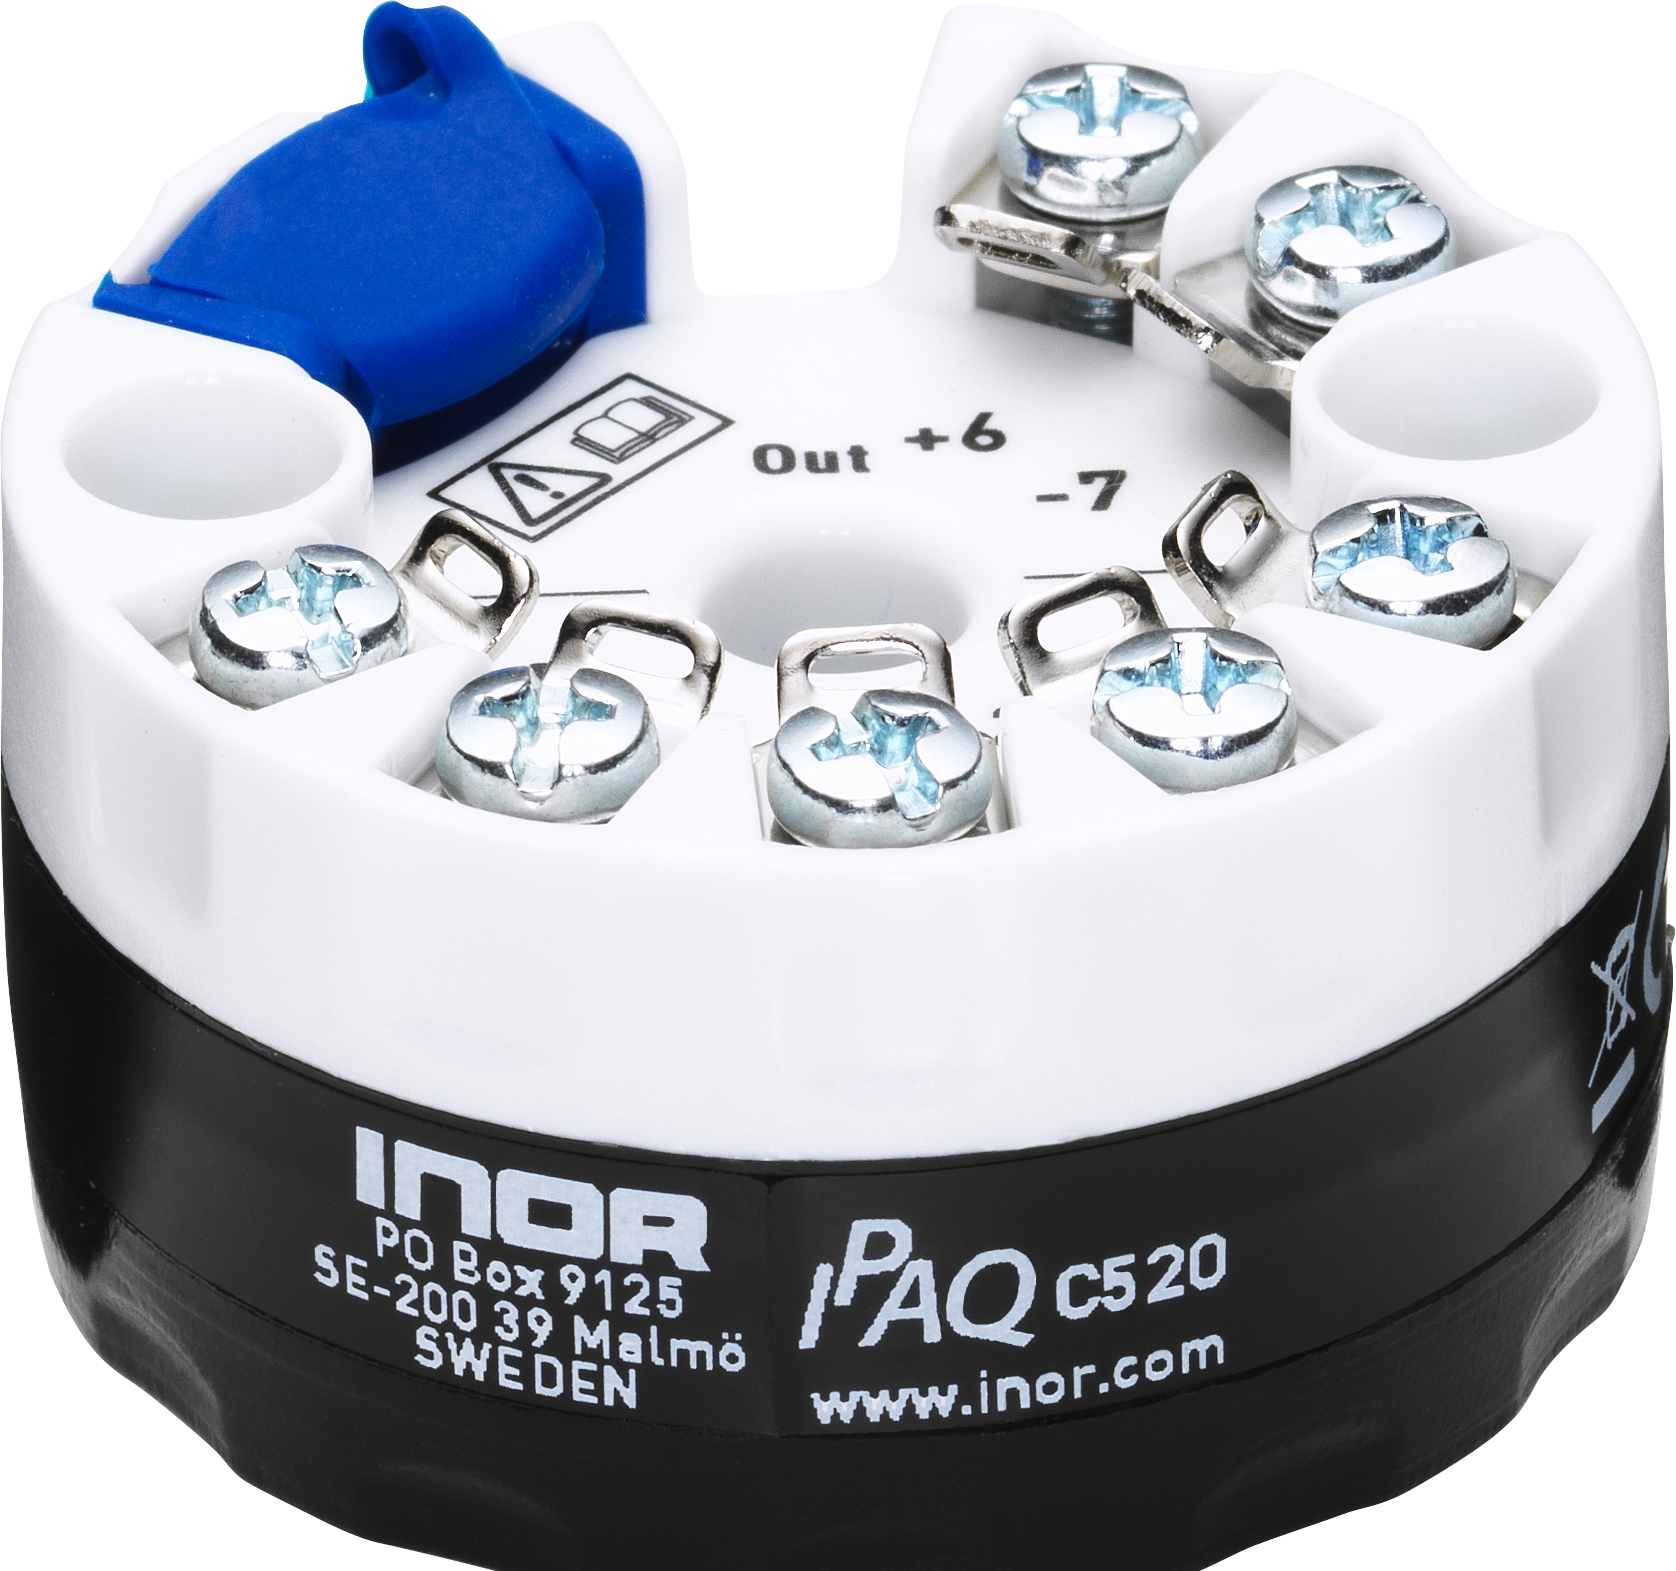 ipaq-c520-in-head-hart-compatible-universal-2-wire-transmitter